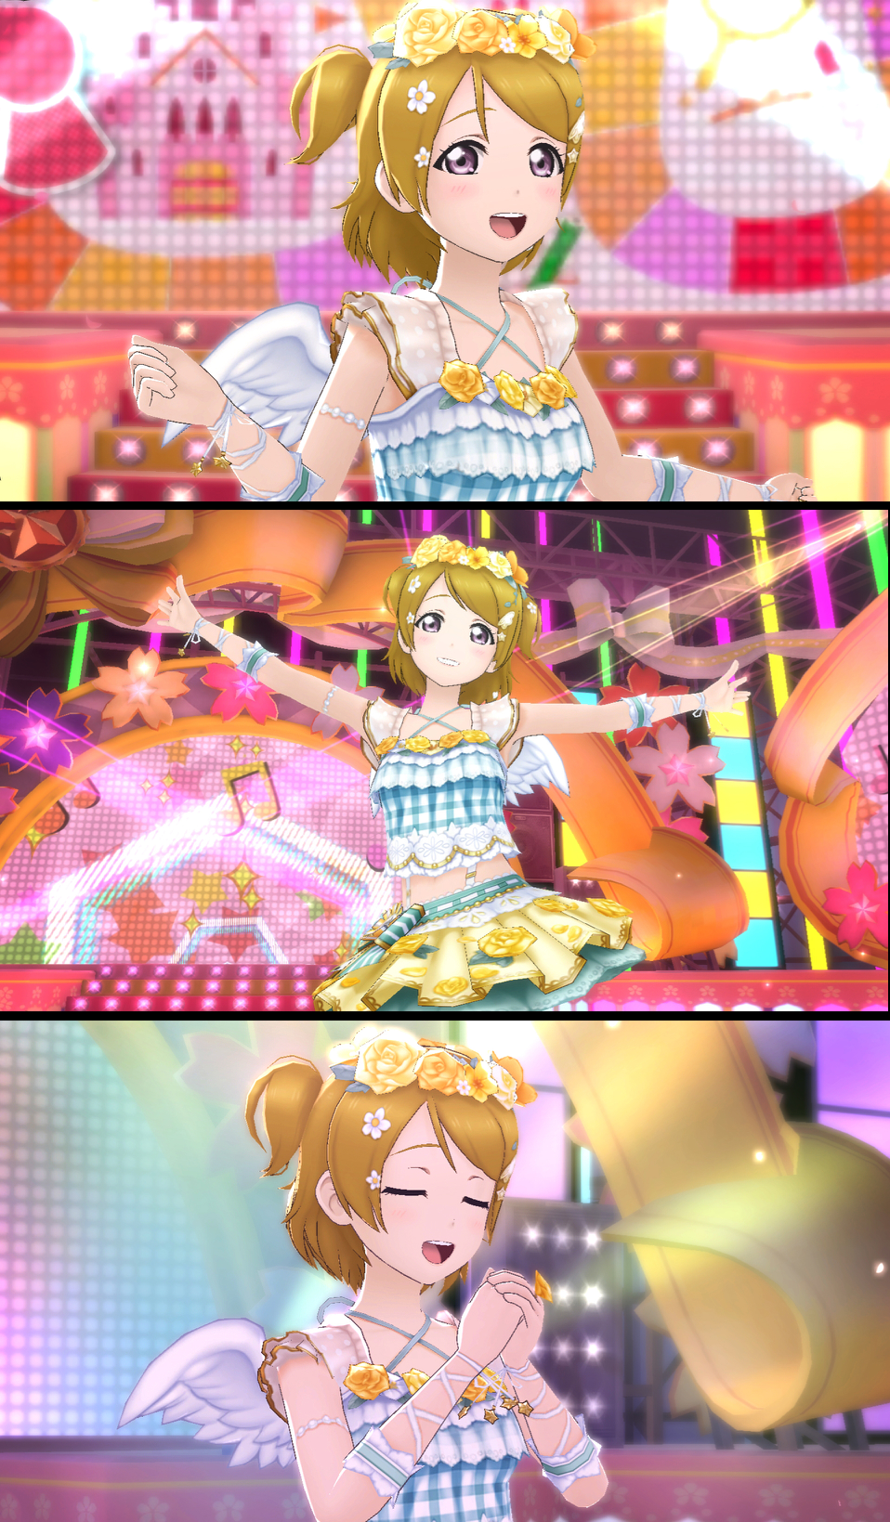 I got the event Hanayo! What a cutie. I really like this costume.